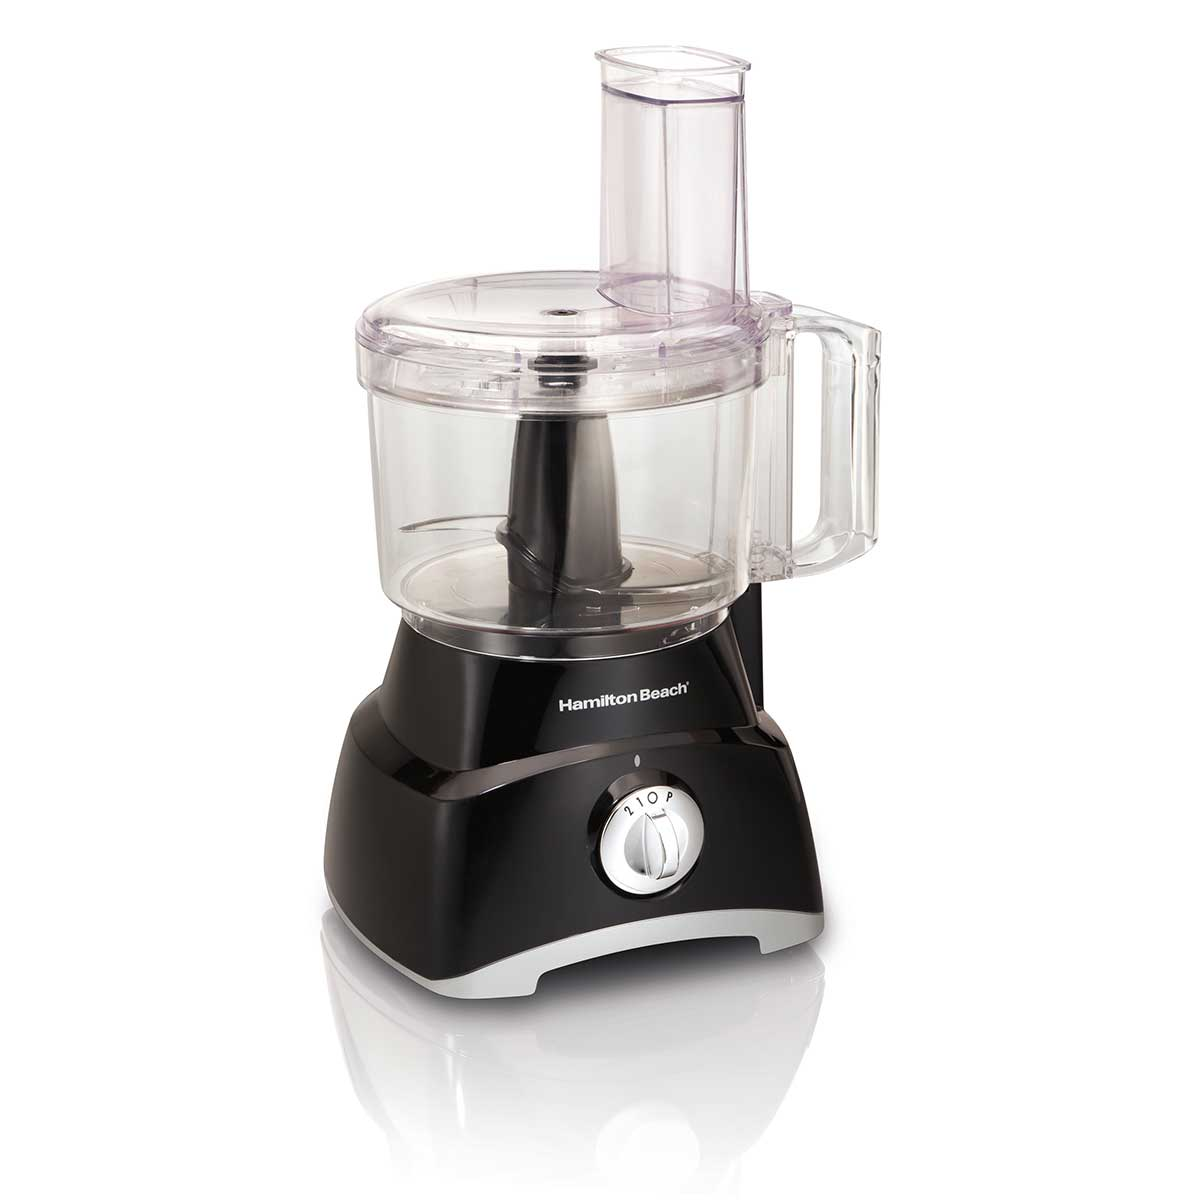 8-Cup Food Processor with Compact Storage, 2 Speeds, Black  (70740)